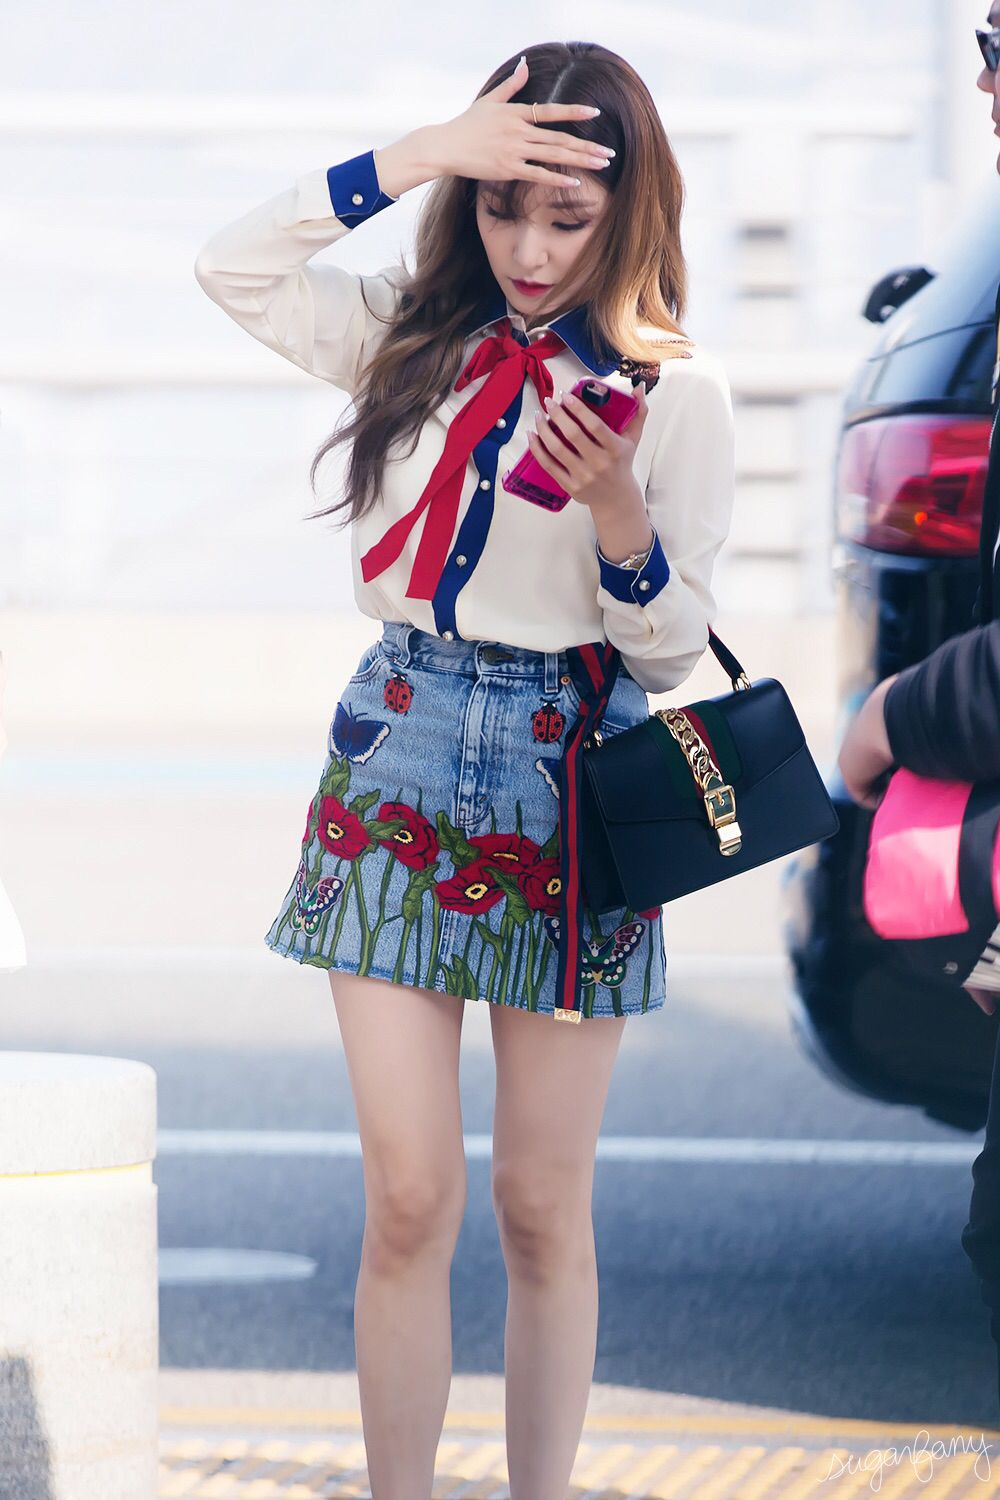 snsd tiffany airport fashion style snsd airport fashion